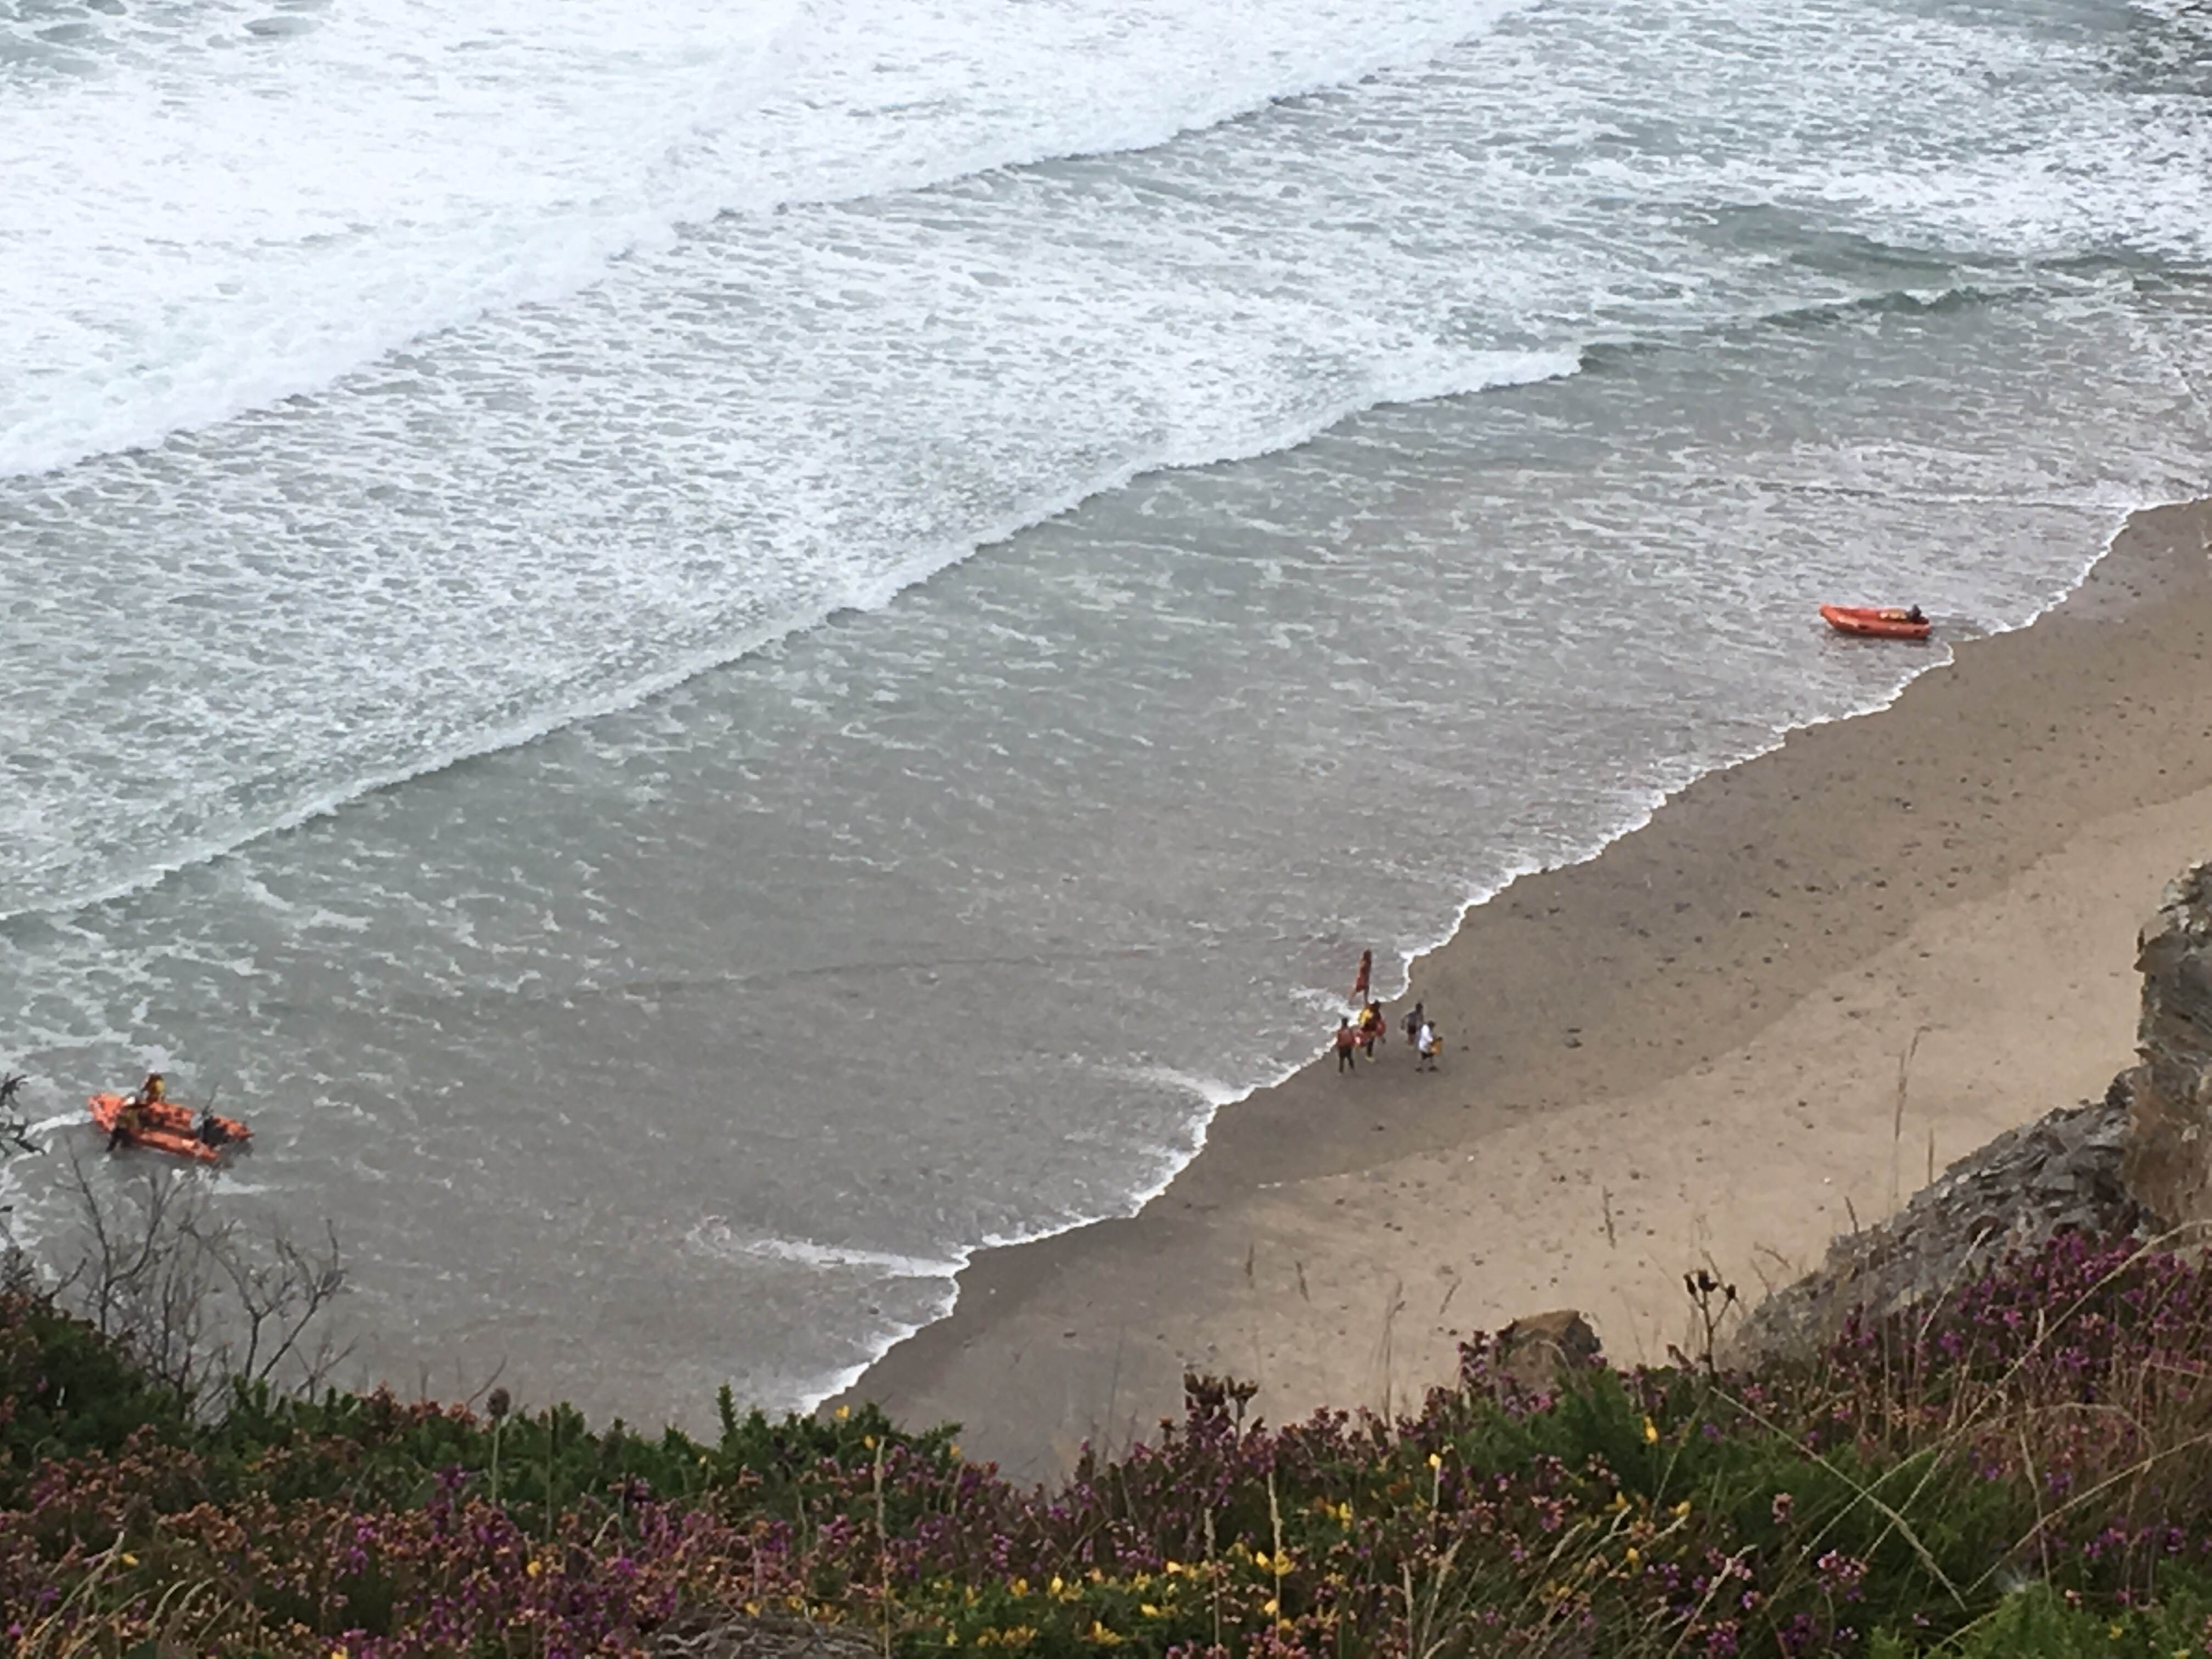 Looking down onto Lushington Cove. St.Agnes RNLI Lifeboat (Left) and Porthtowan Lifeguard Rescue Boat (Right).